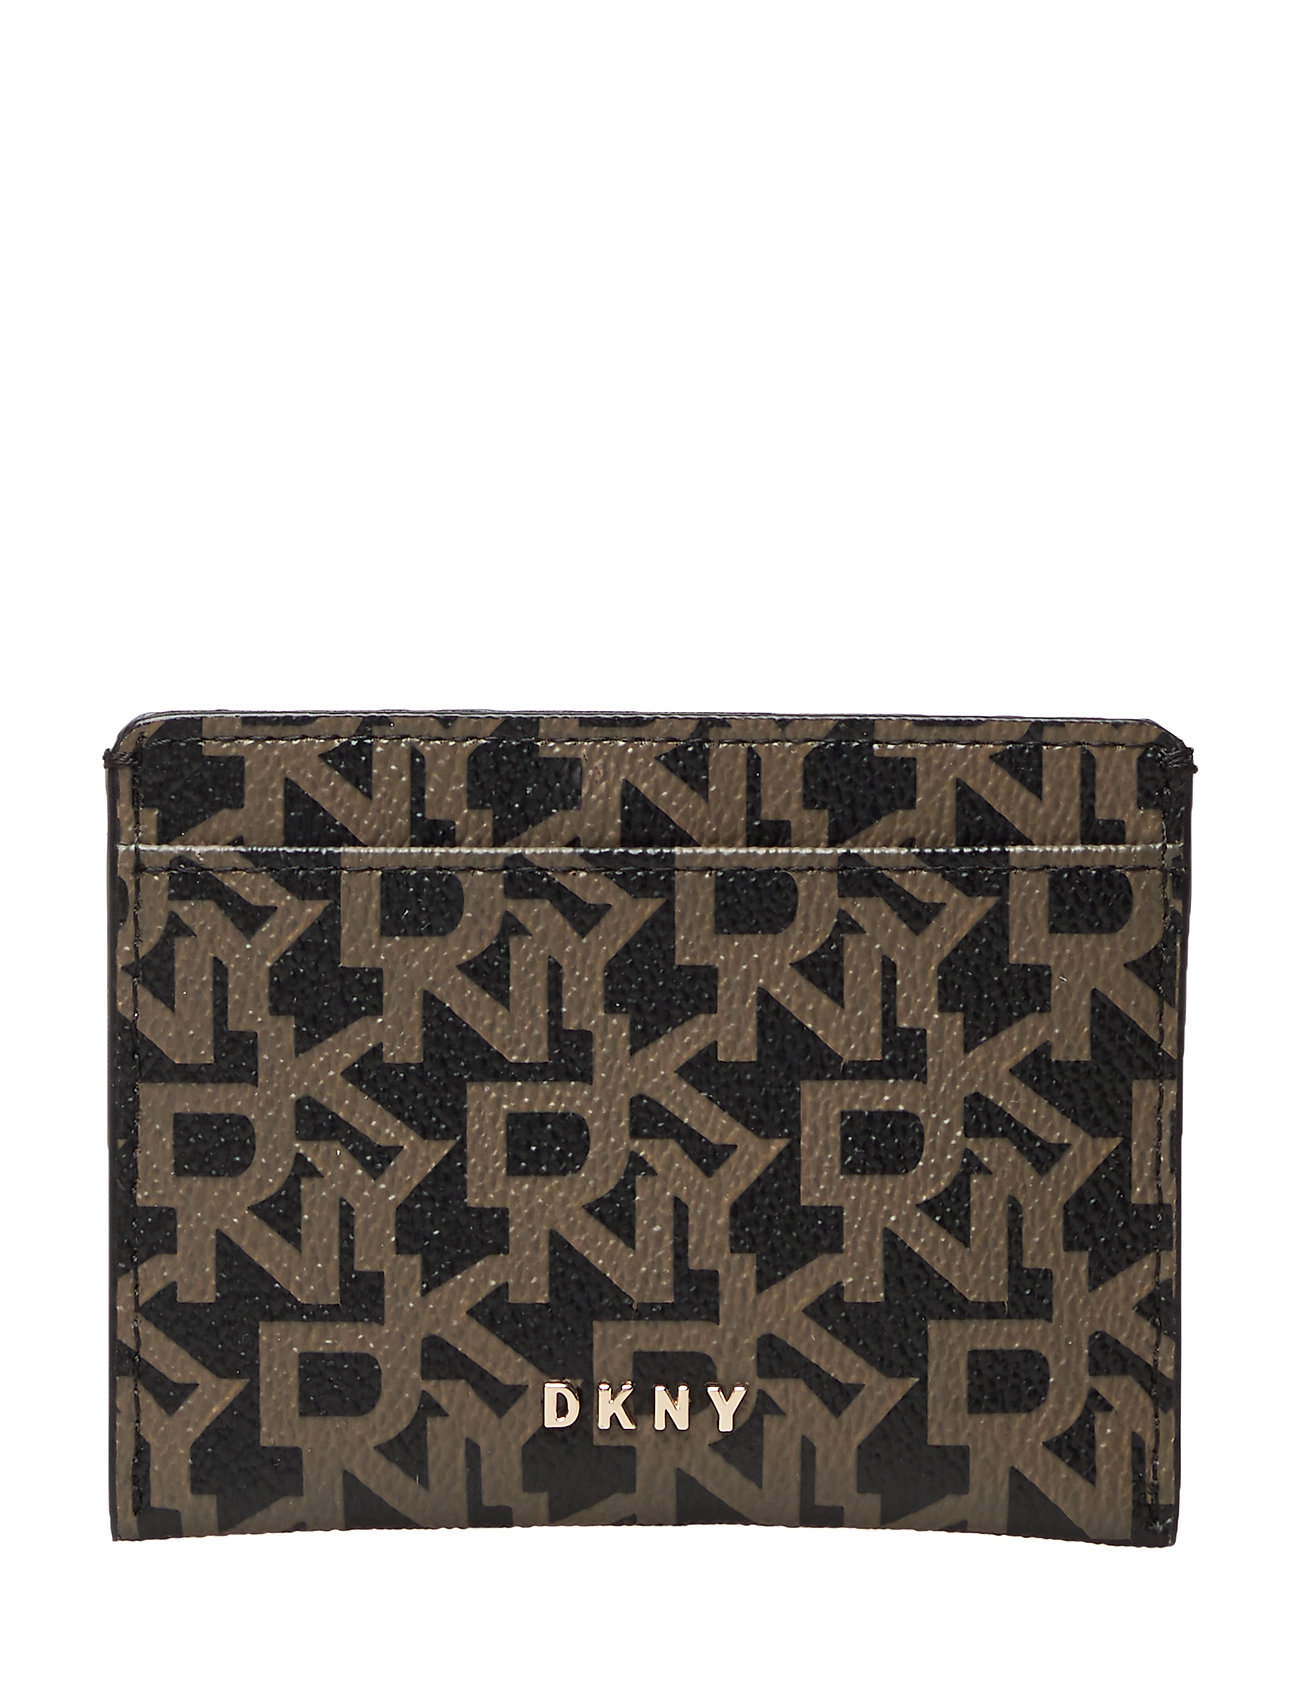 Image of Bryant-Card Holder-L Bags Card Holders & Wallets Card Holder Brun DKNY Bags (3305996417)